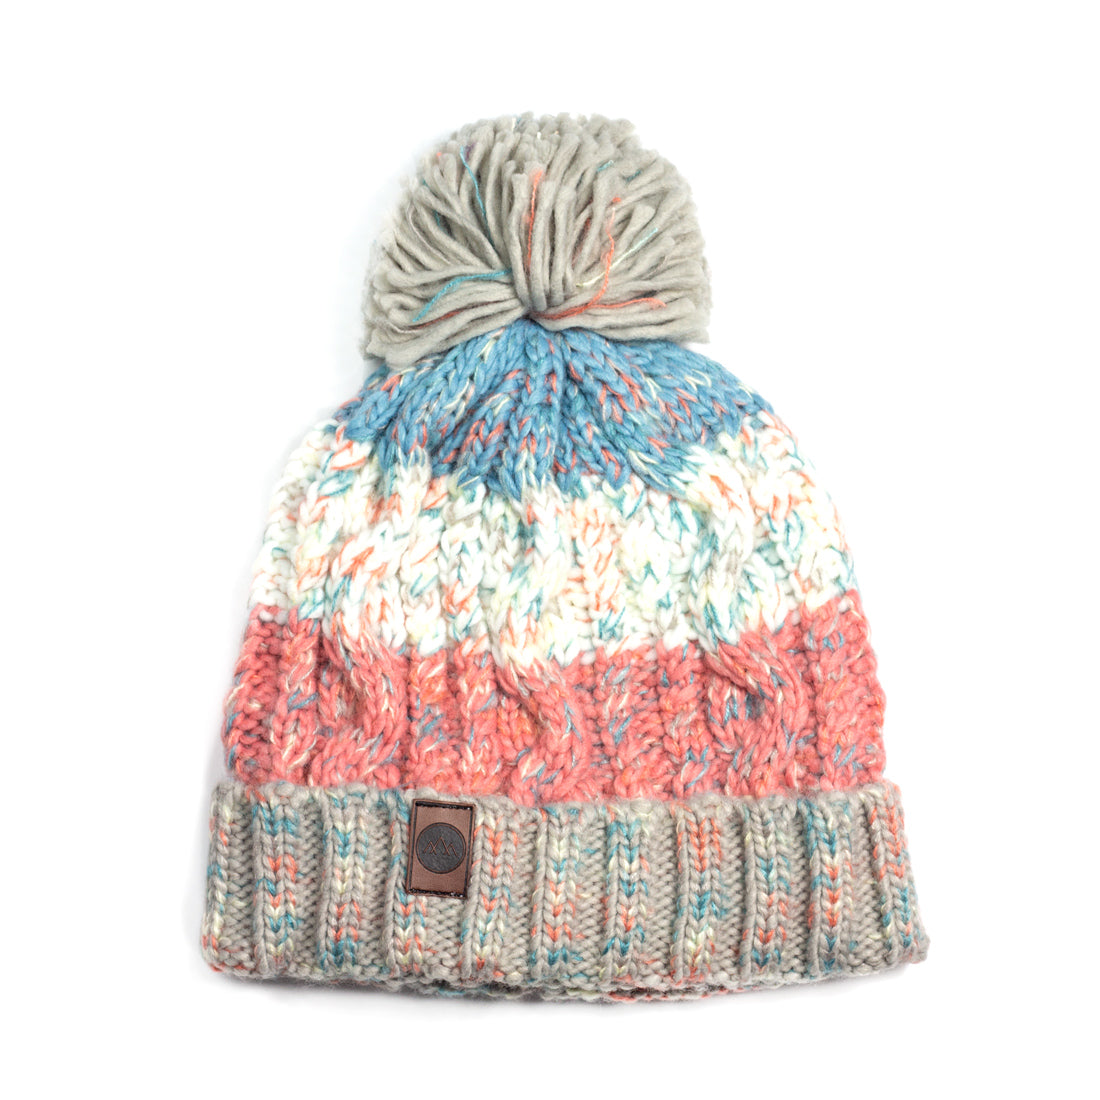 Into the Wild Bobble Hat - Ice Cream